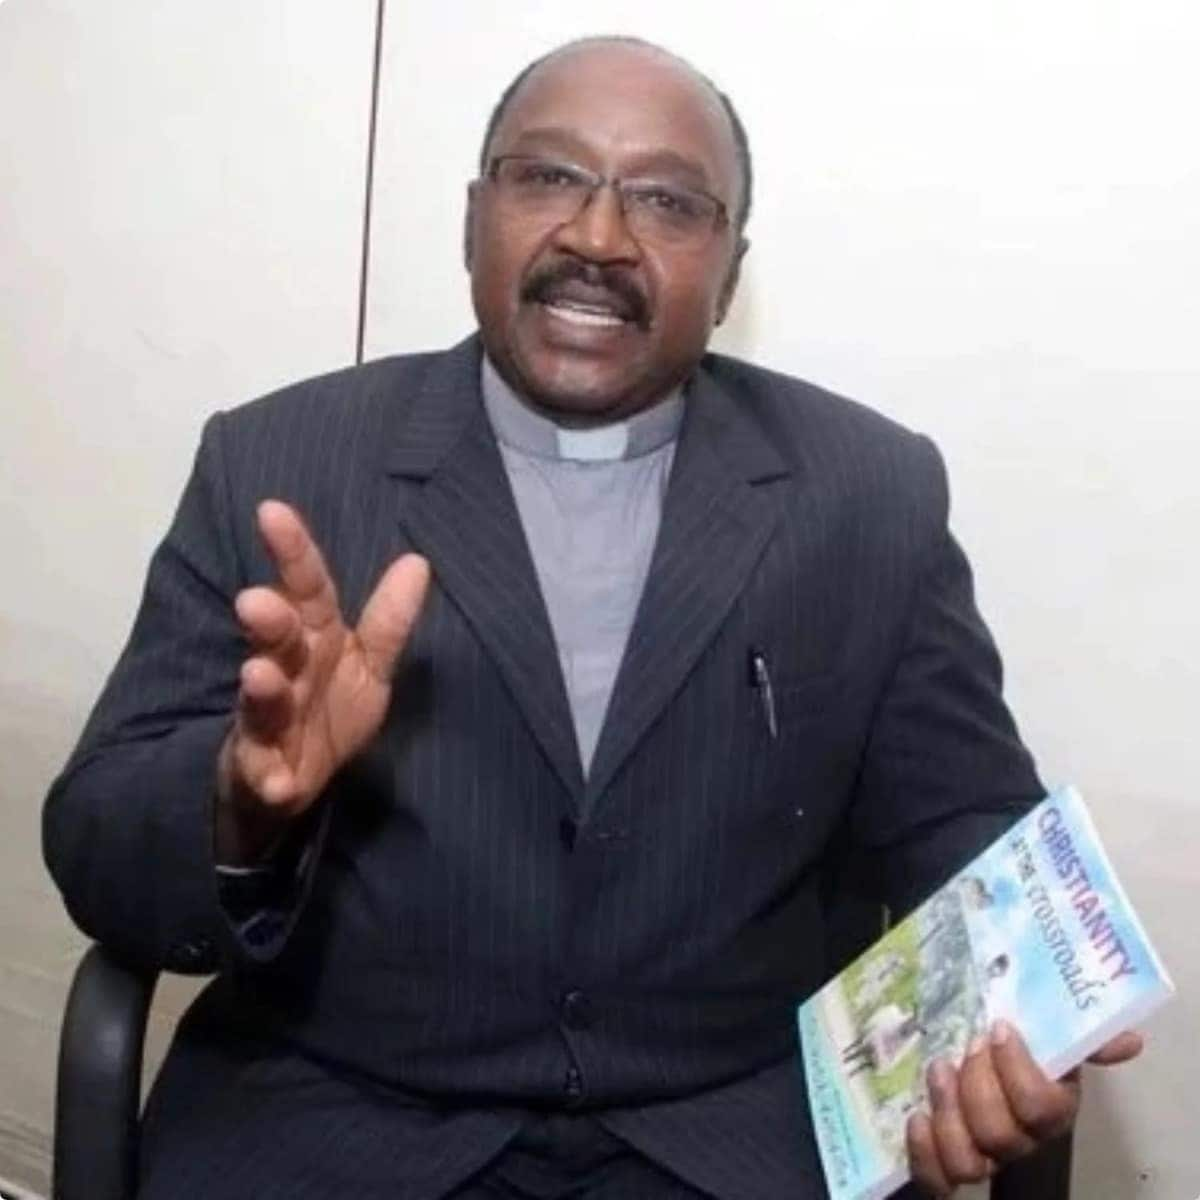 Marry more wives; the Bible supports polygamy – renowned pastor 'urges' men